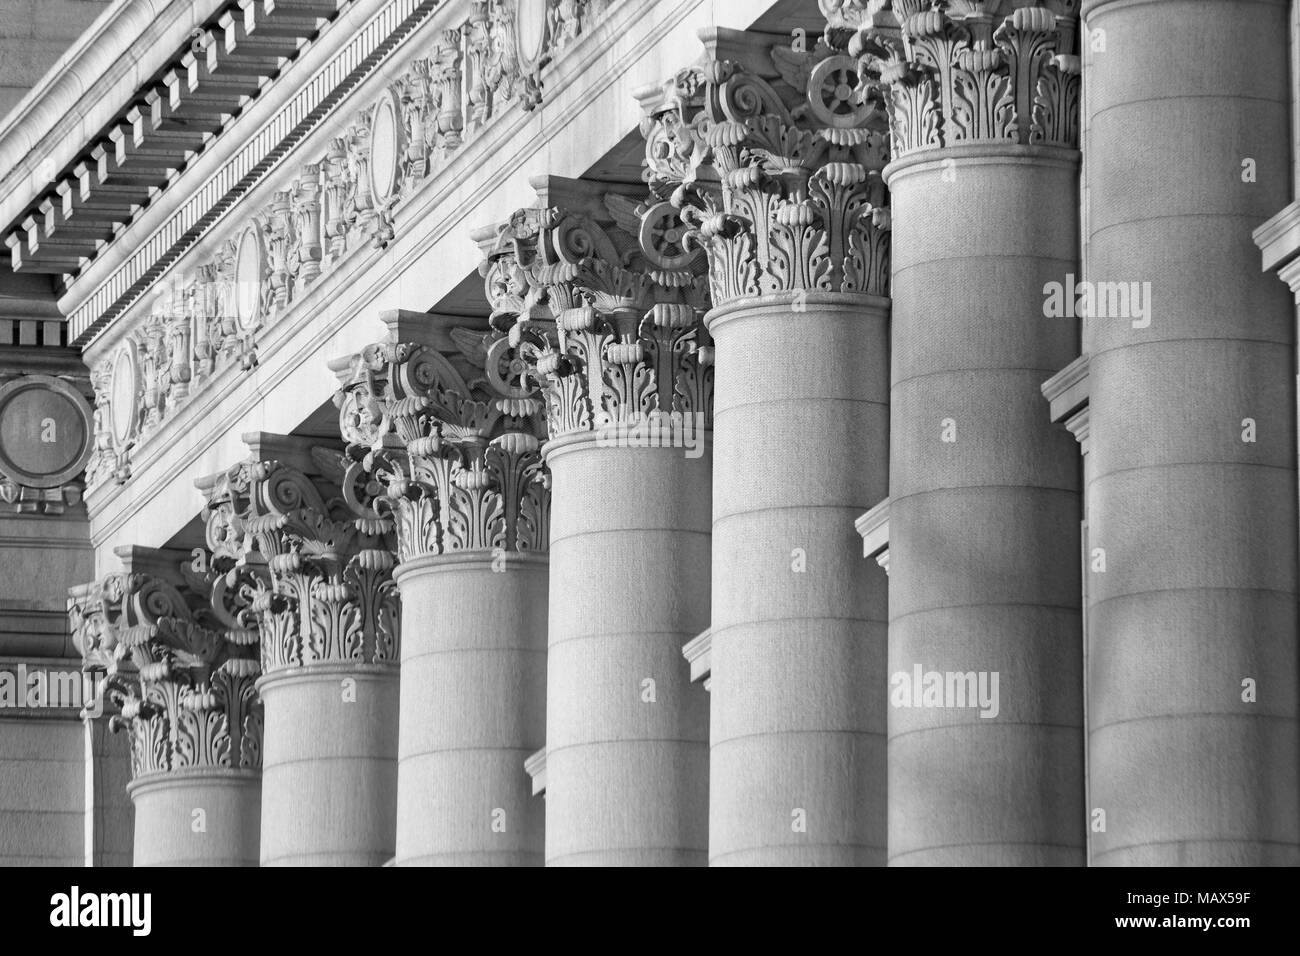 A series of Corinthian Columns shot at sunset in Black & White, this was taken in lower Manhattan at the old customs house i Stock Photo